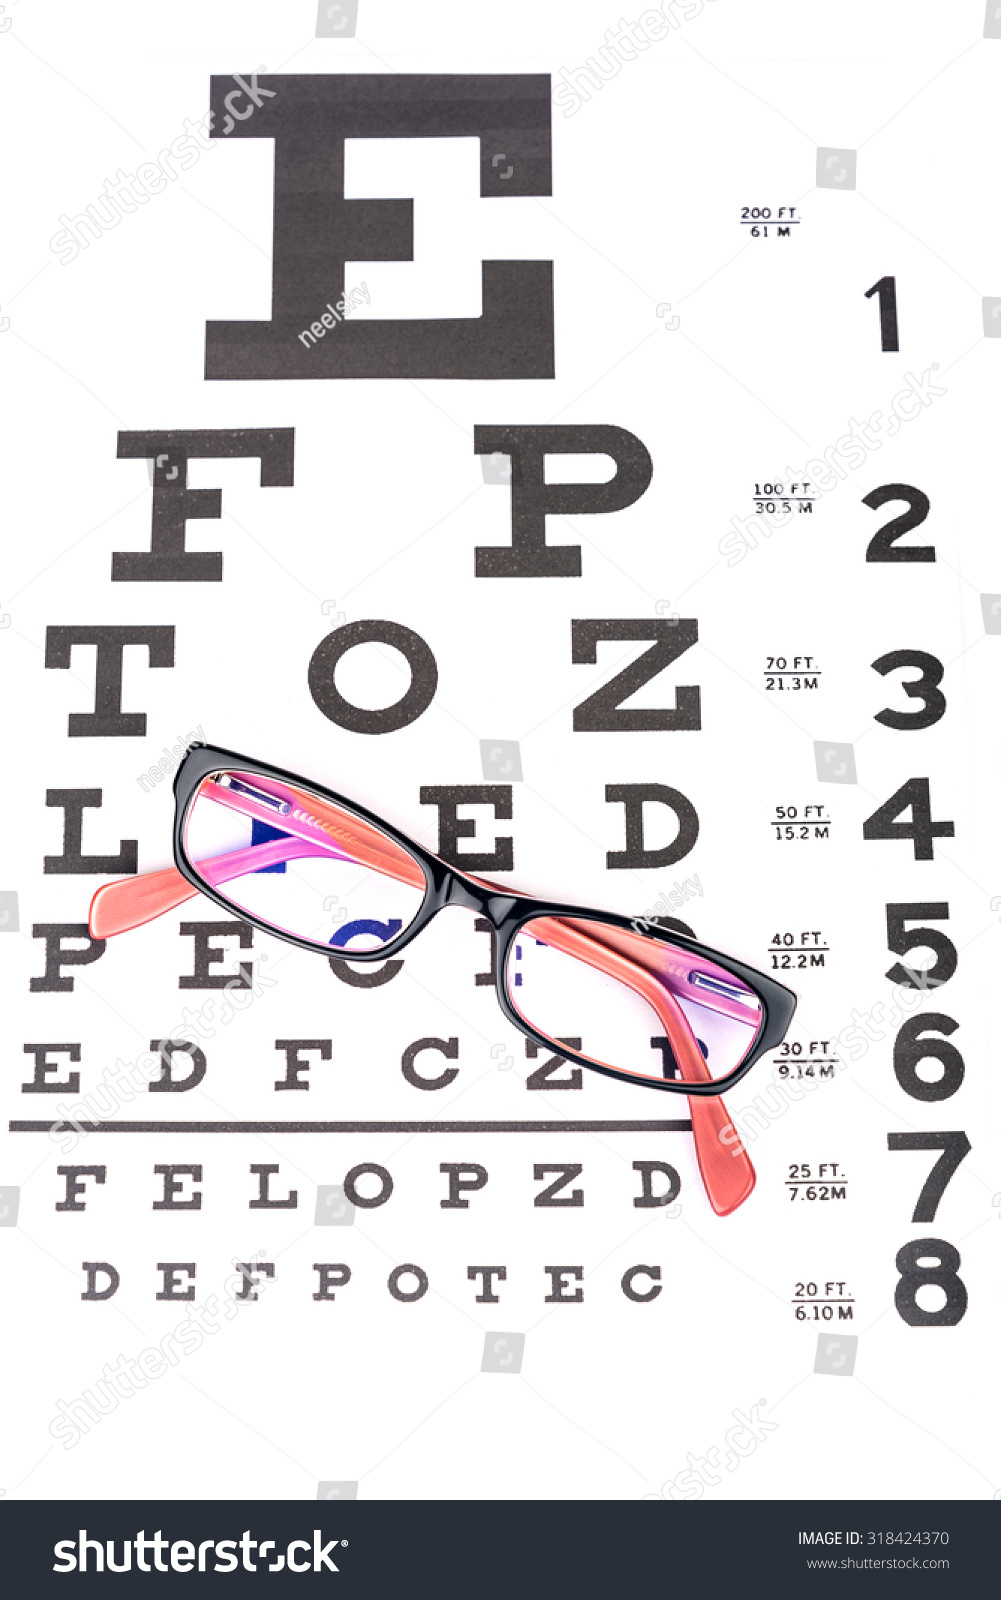 Printable snellen eye chart images free any chart examples printable eye chart free choice image free any chart examples printable snellen eye chart gallery free geenschuldenfo Choice Image